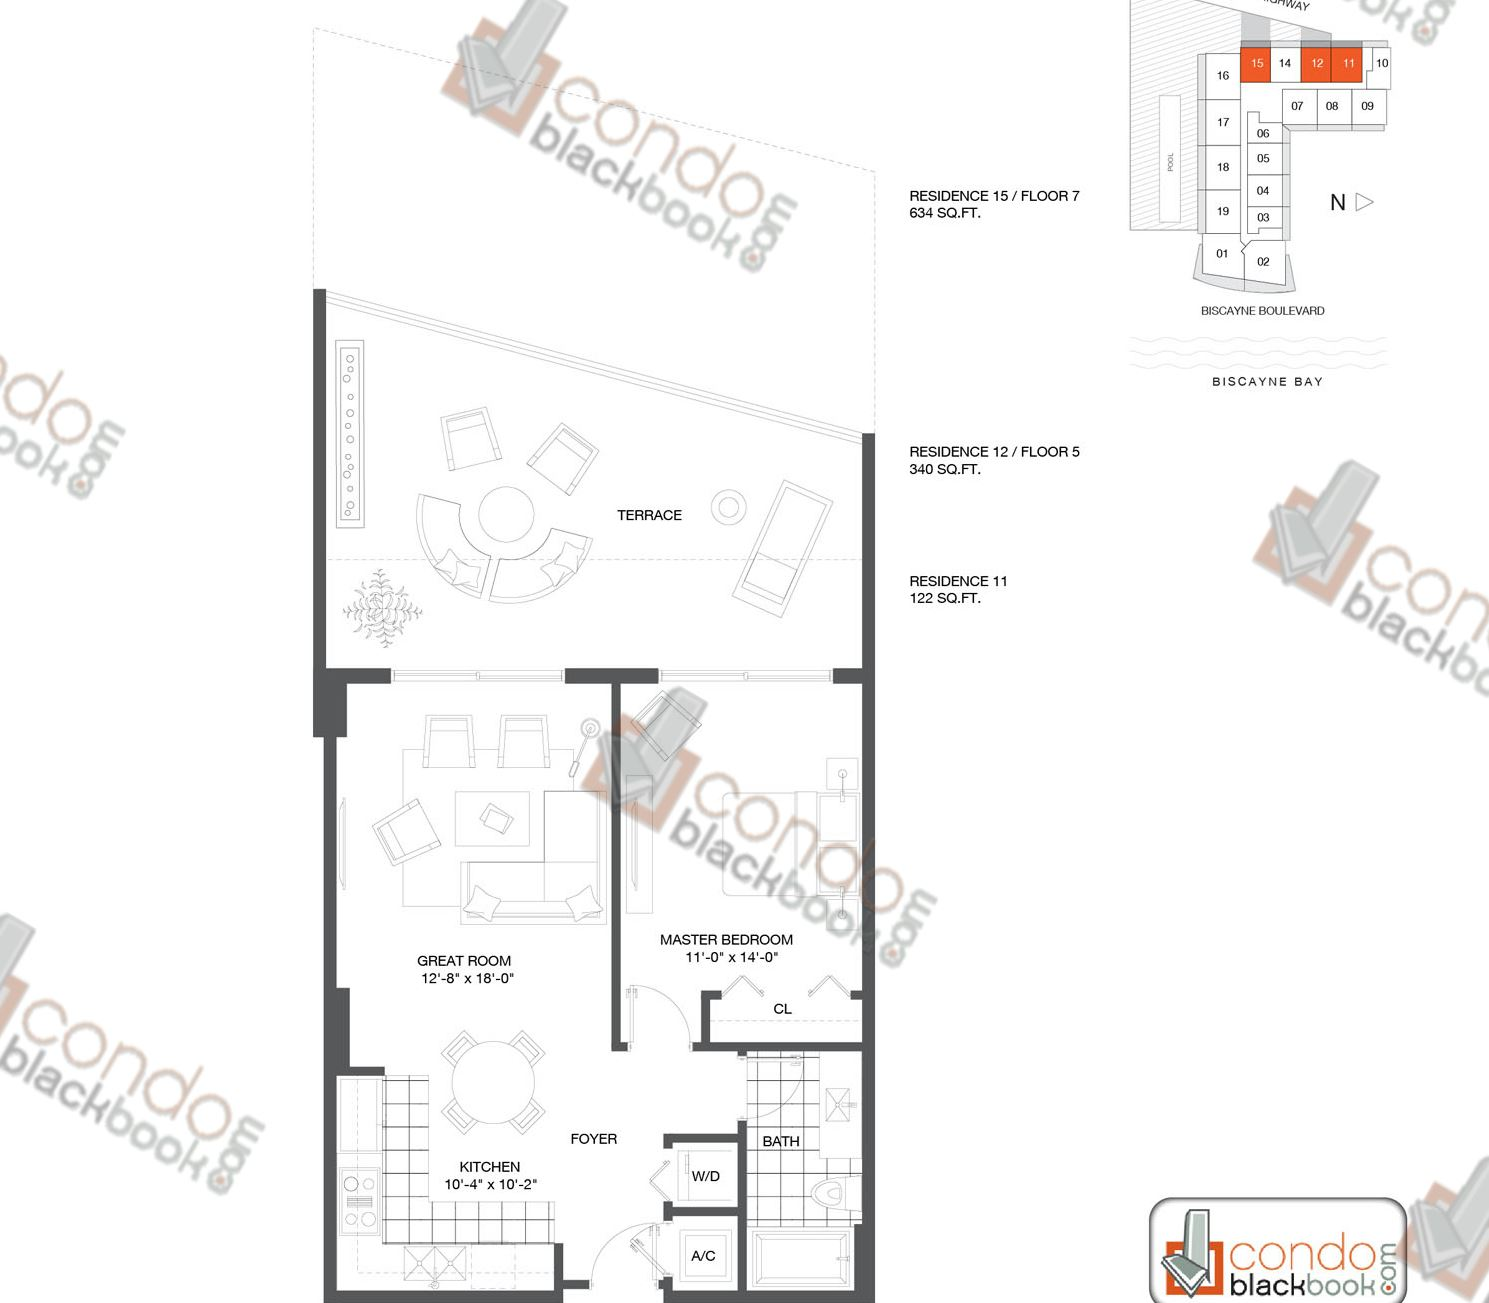 Floor plan for Baltus House Design District / Buena Vista Miami, model Residence 11, 12, 15, line 11, 12, 1/1+DEN bedrooms, 700 sq ft